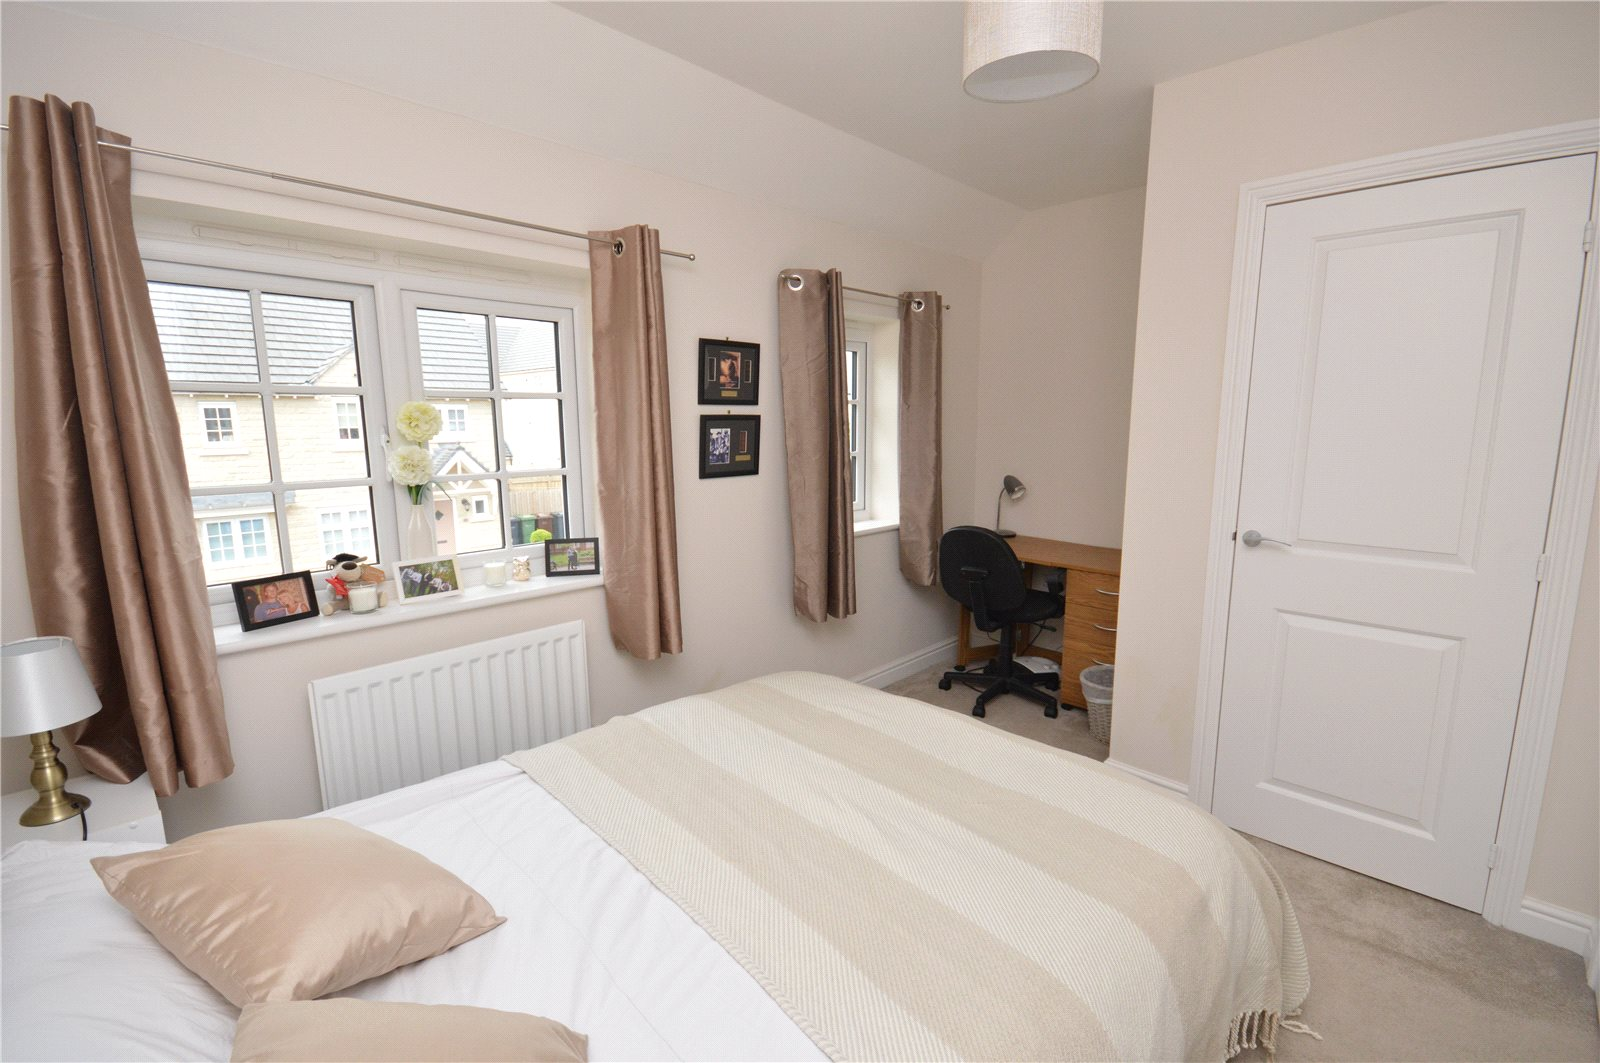 Property for sale in Horsforth, bedroom double bed